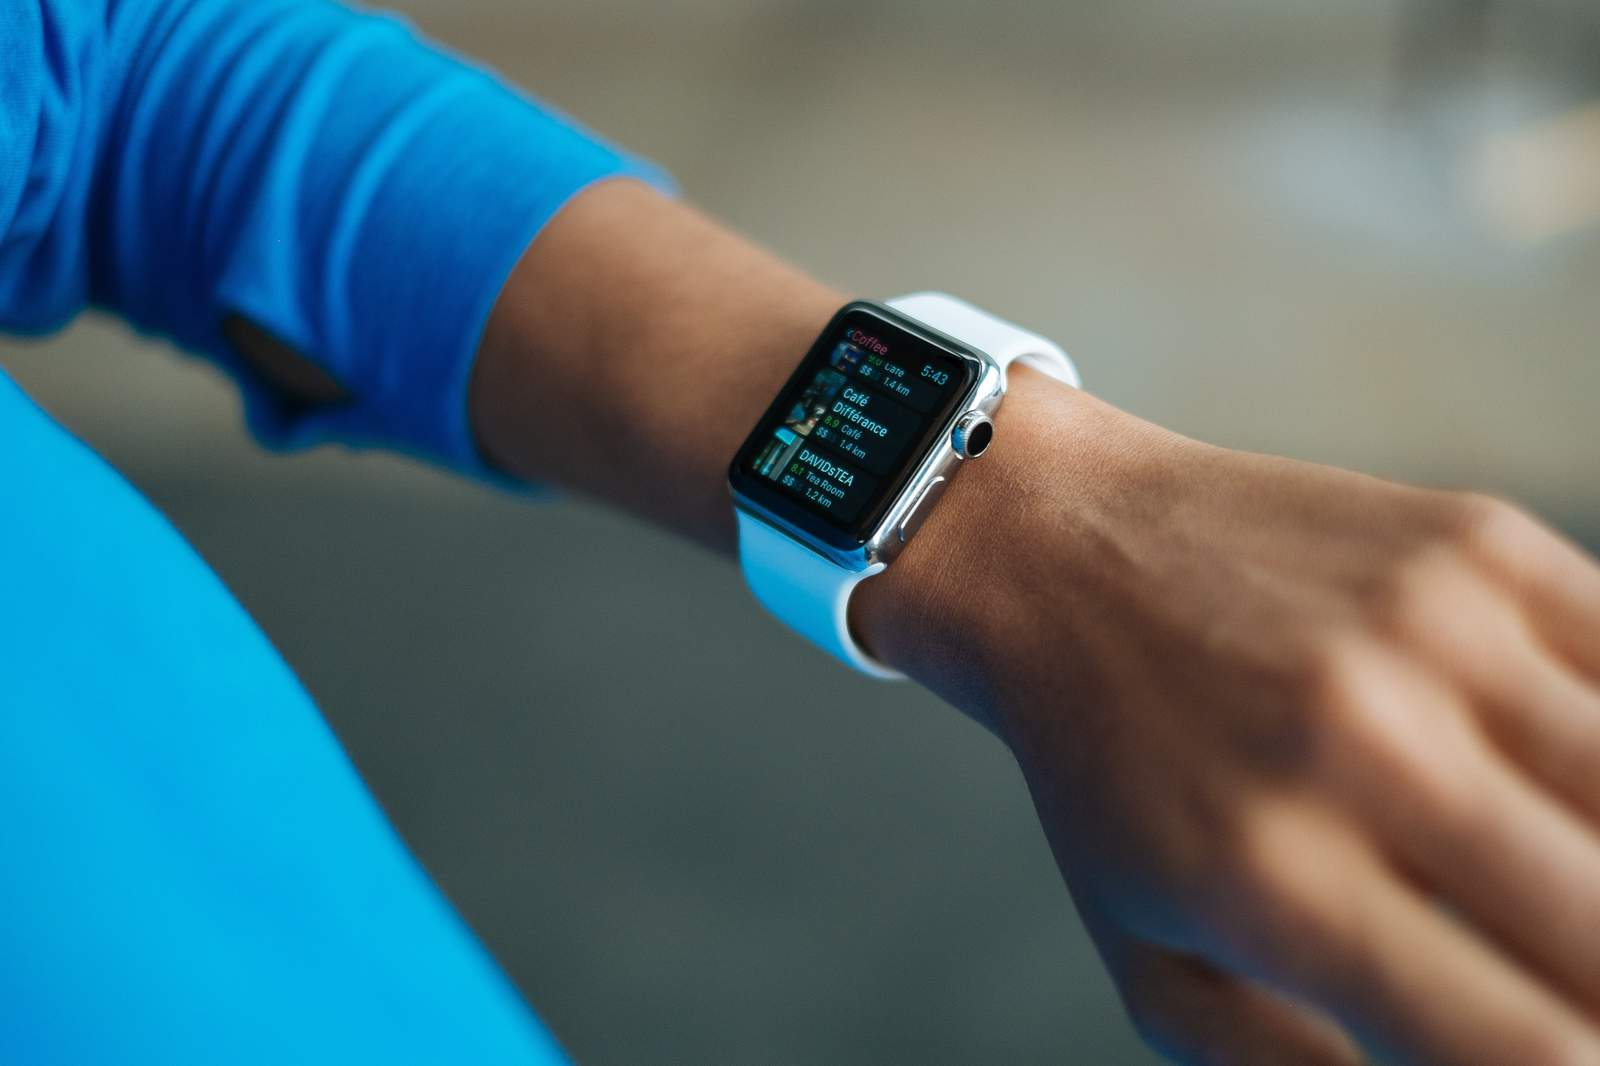 All the ways a fitness tracker could help...